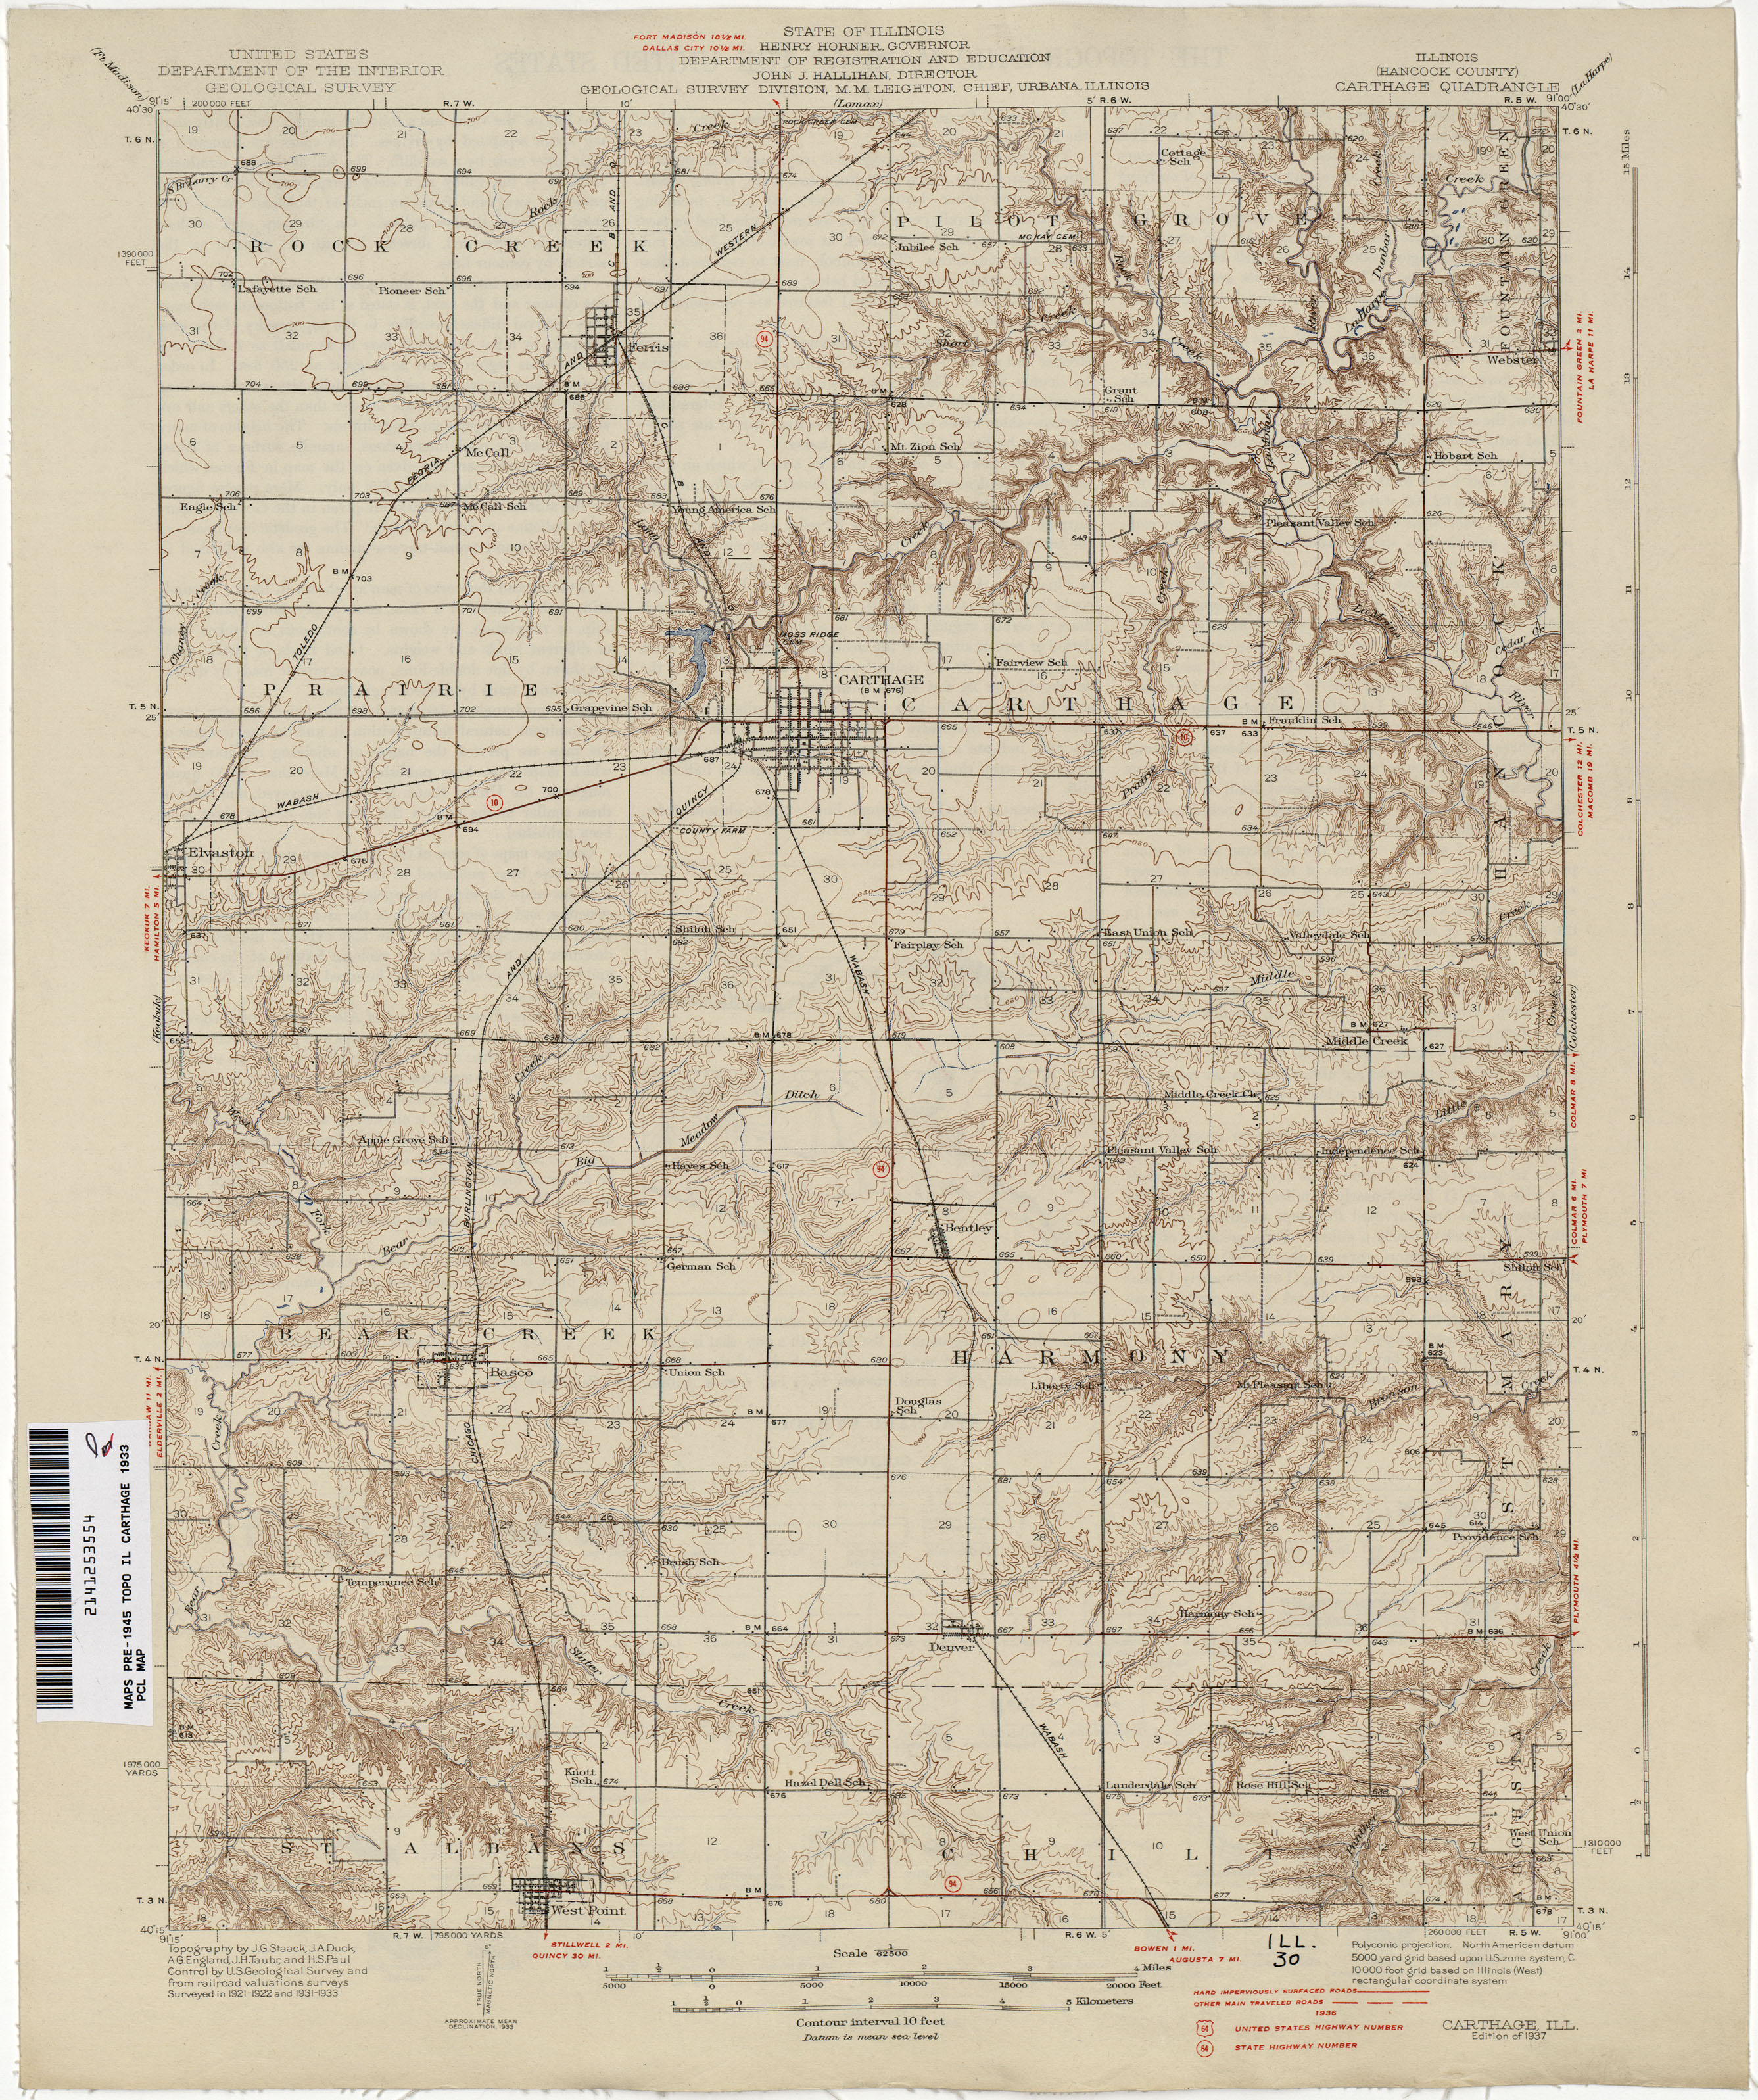 Illinois Historical Topographic Maps PerryCastañeda Map - Maps of illinois